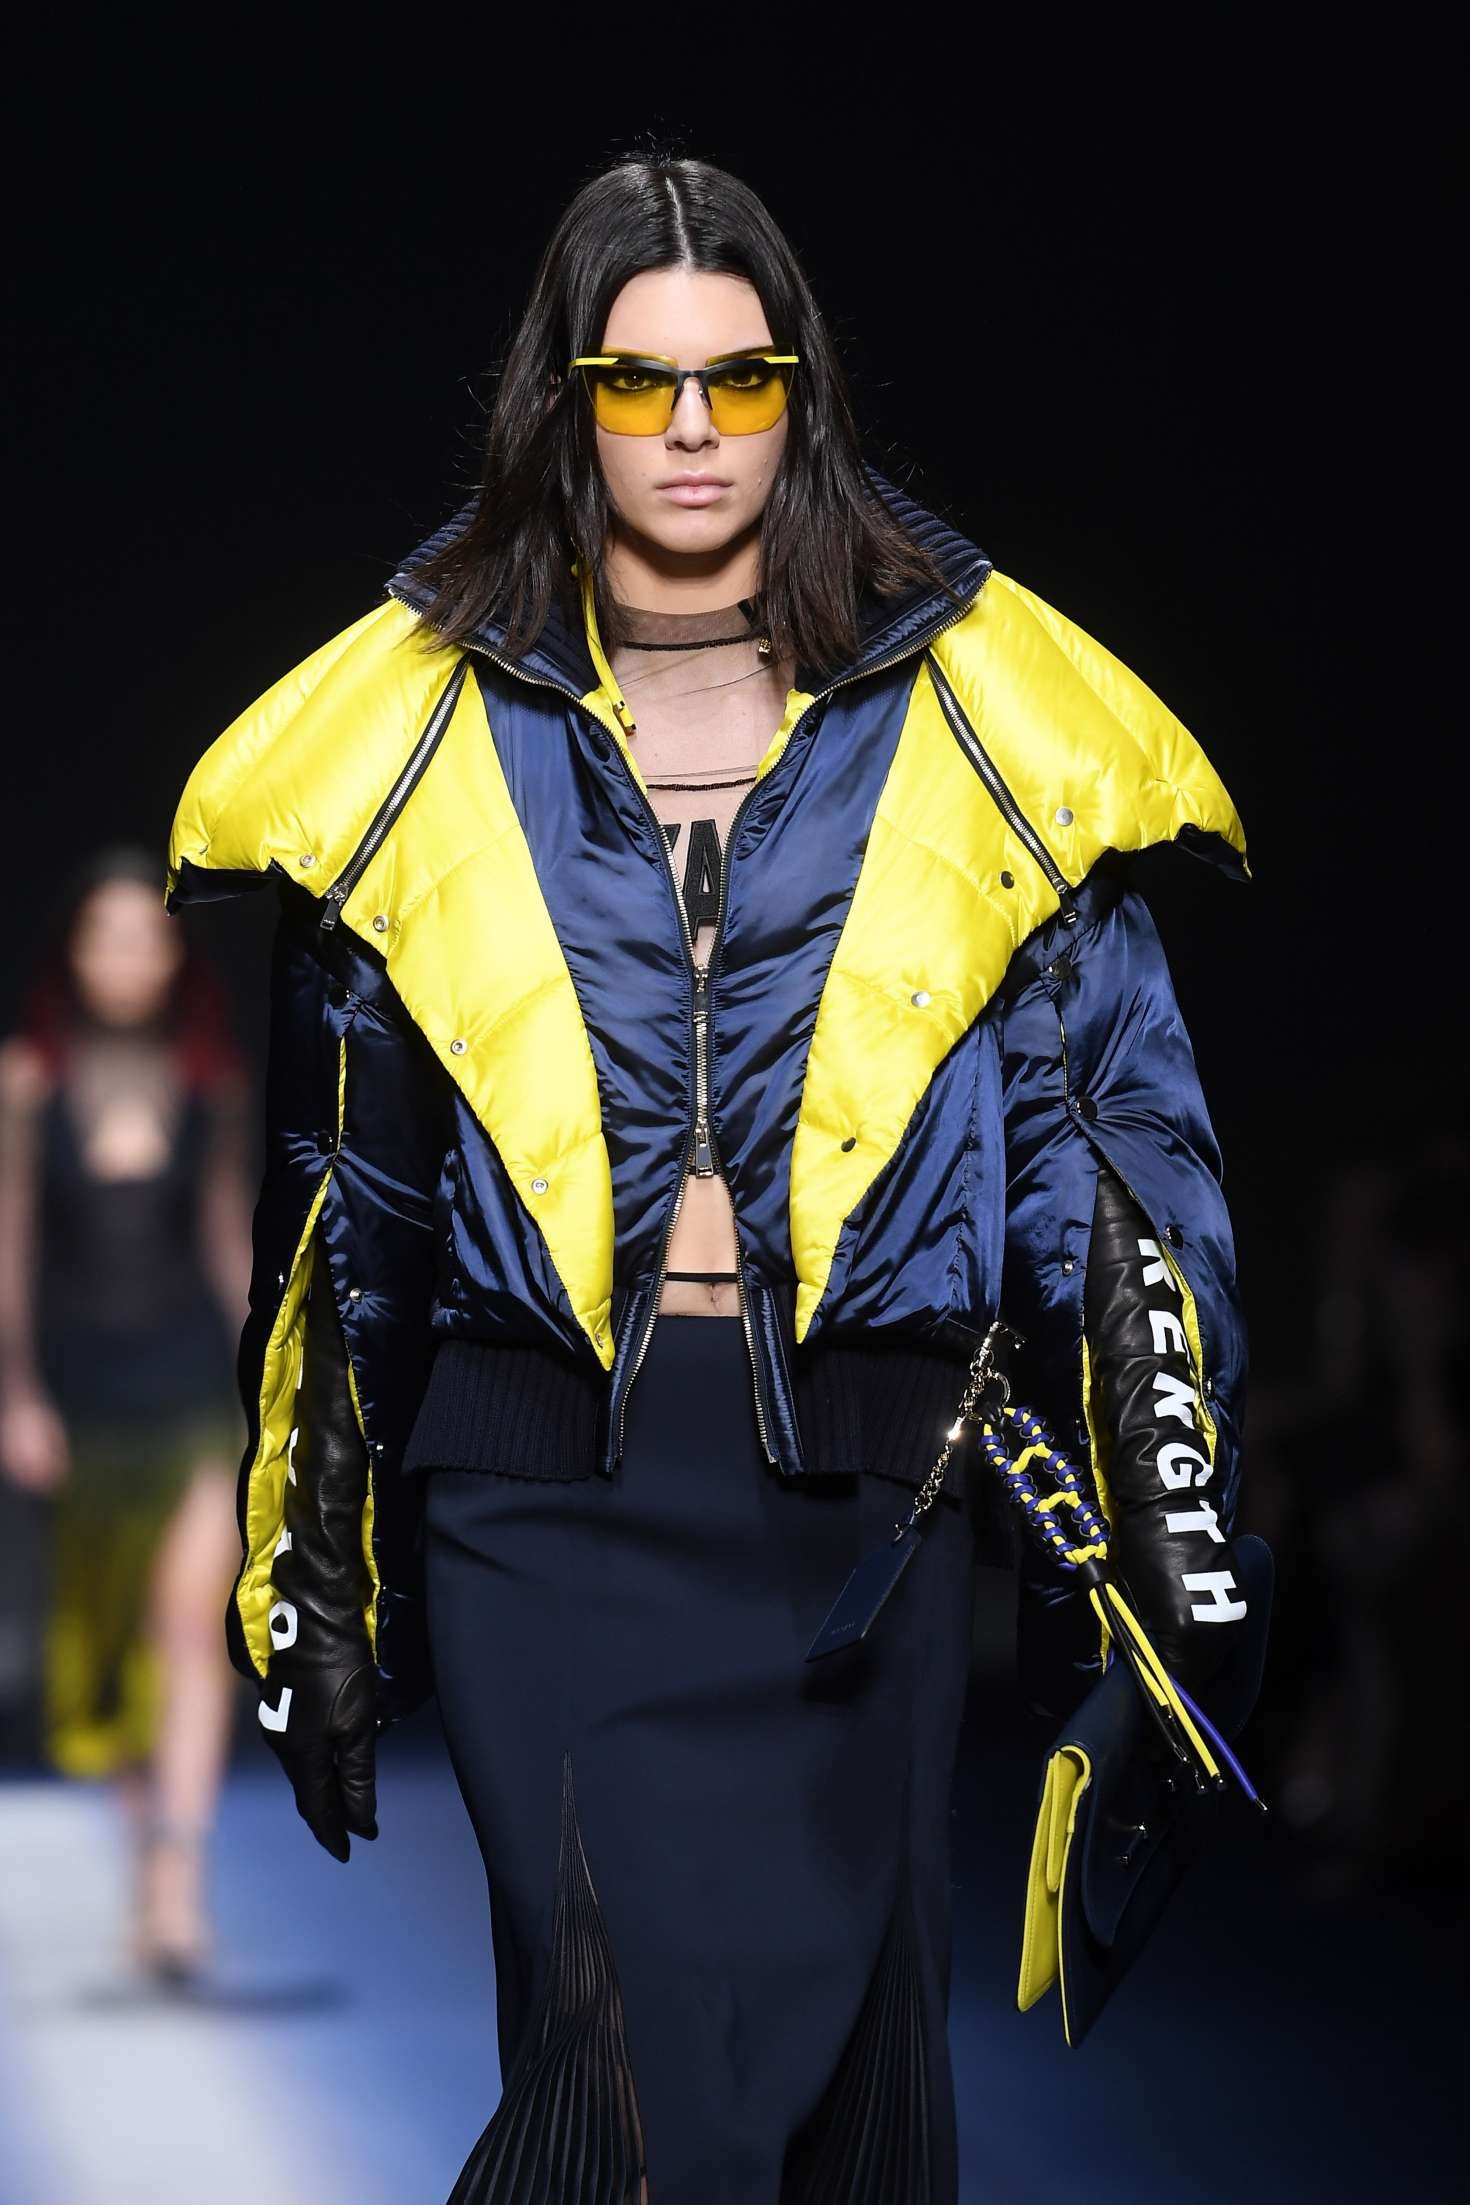 Kendall Jenner 2017 : Kendall Jenner: Versace Runway Show at MFW 2017 -05